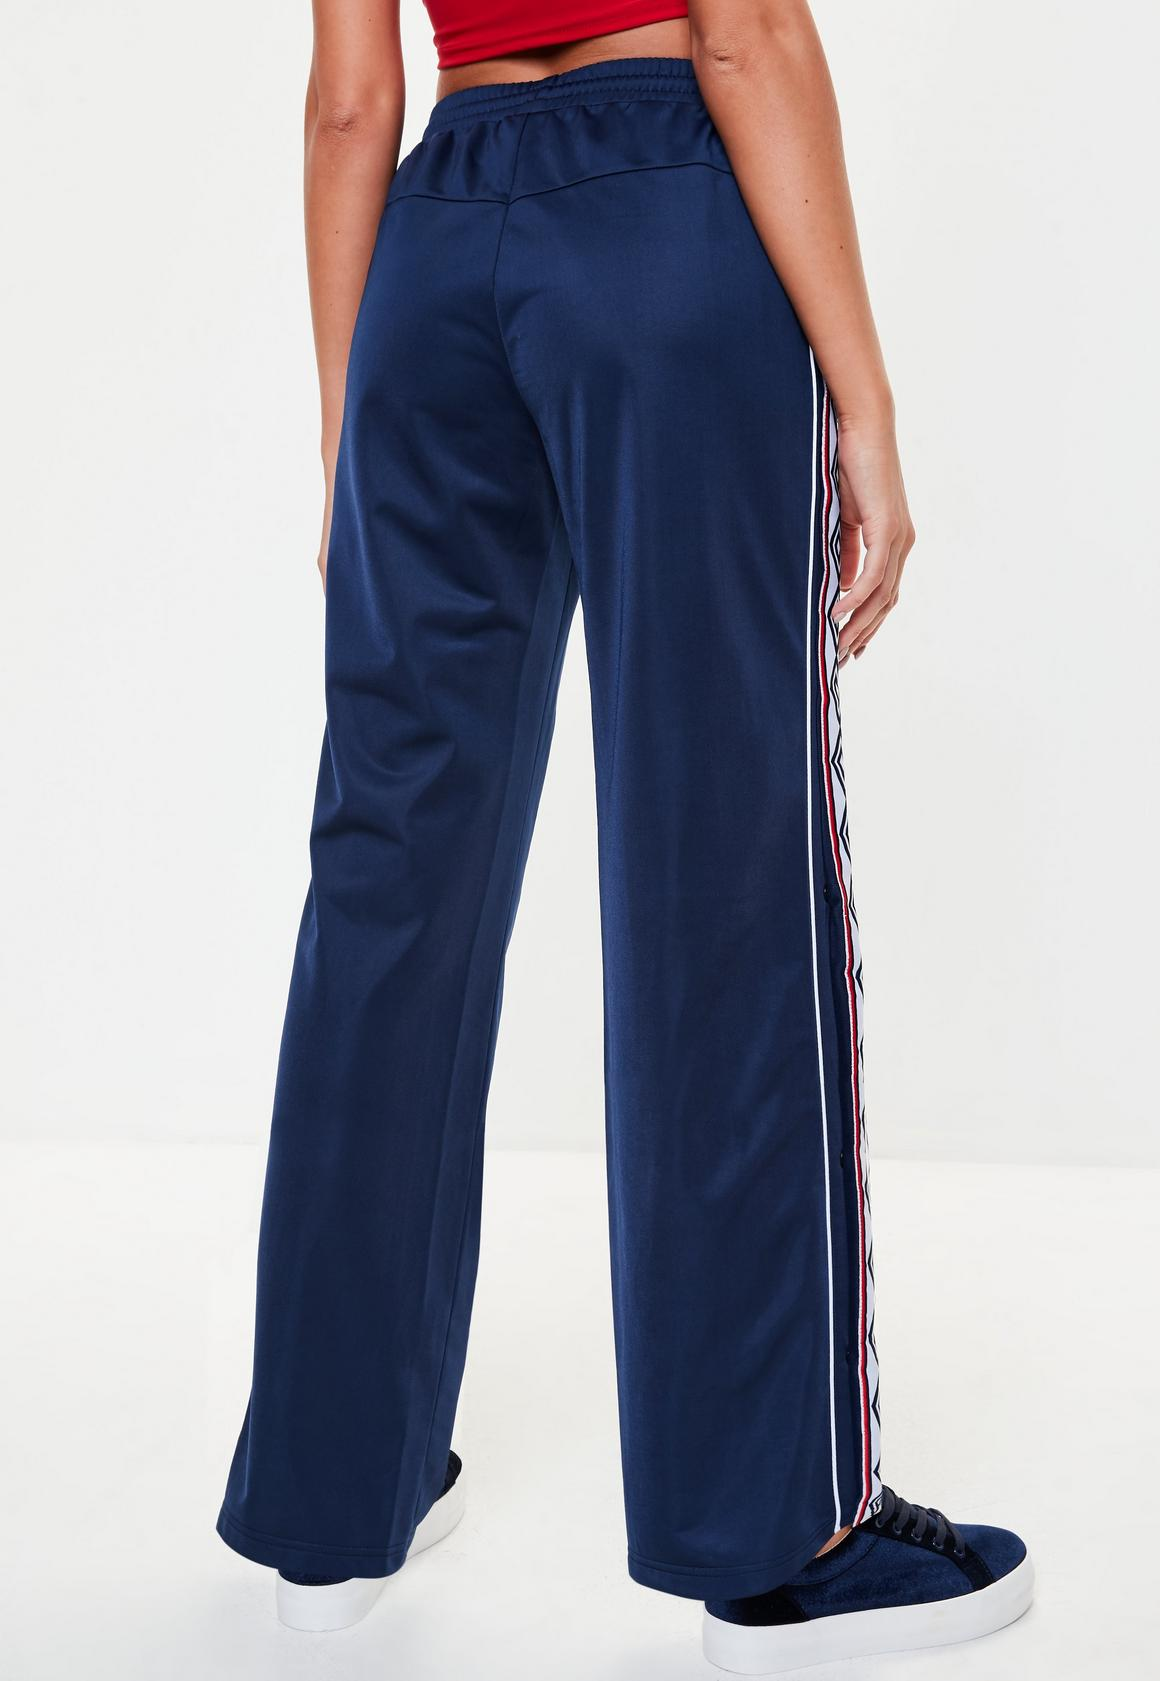 758bf994f9 Missguided - Umbro x Missguided Navy Tape Leg Tricot Track Pant